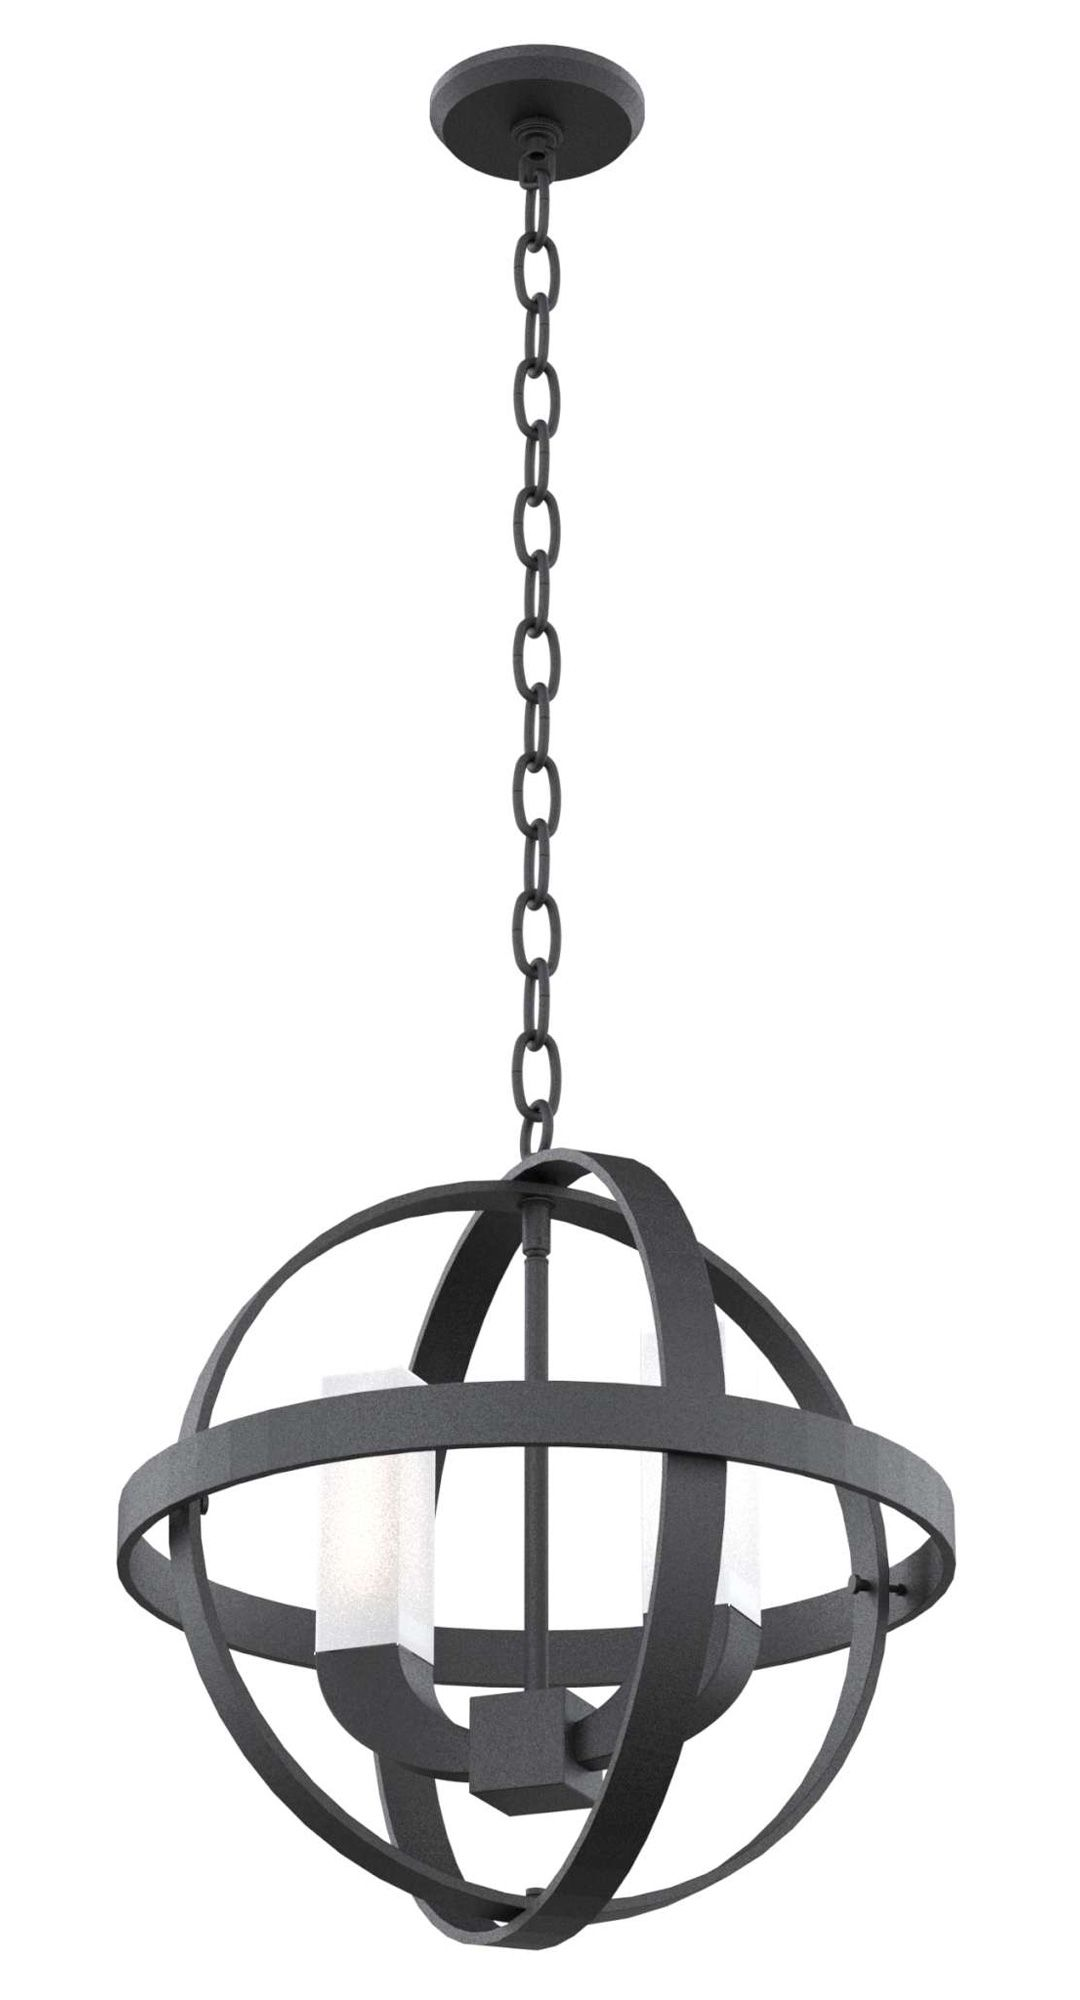 Jupiter outdoor pendant features opal glass tubes housing the light with a hammered black finish 20 watt 120 volt jcd g9 halogen bulbs are included